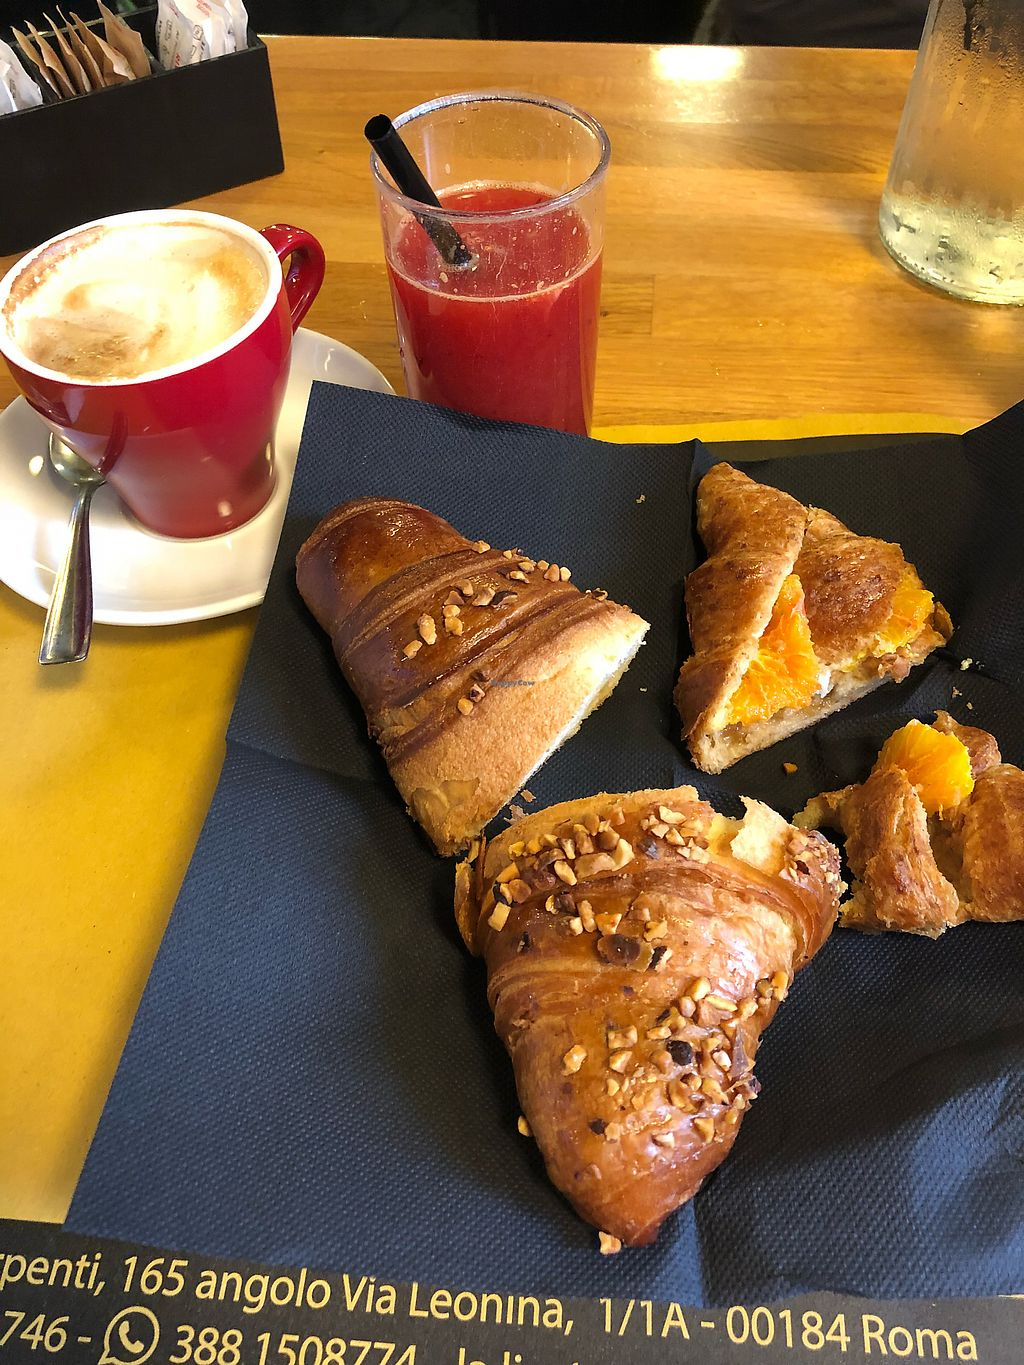 """Photo of La Licata  by <a href=""""/members/profile/_hael"""">_hael</a> <br/>The Vegan Breakfast Meal <br/> February 27, 2018  - <a href='/contact/abuse/image/65057/364519'>Report</a>"""